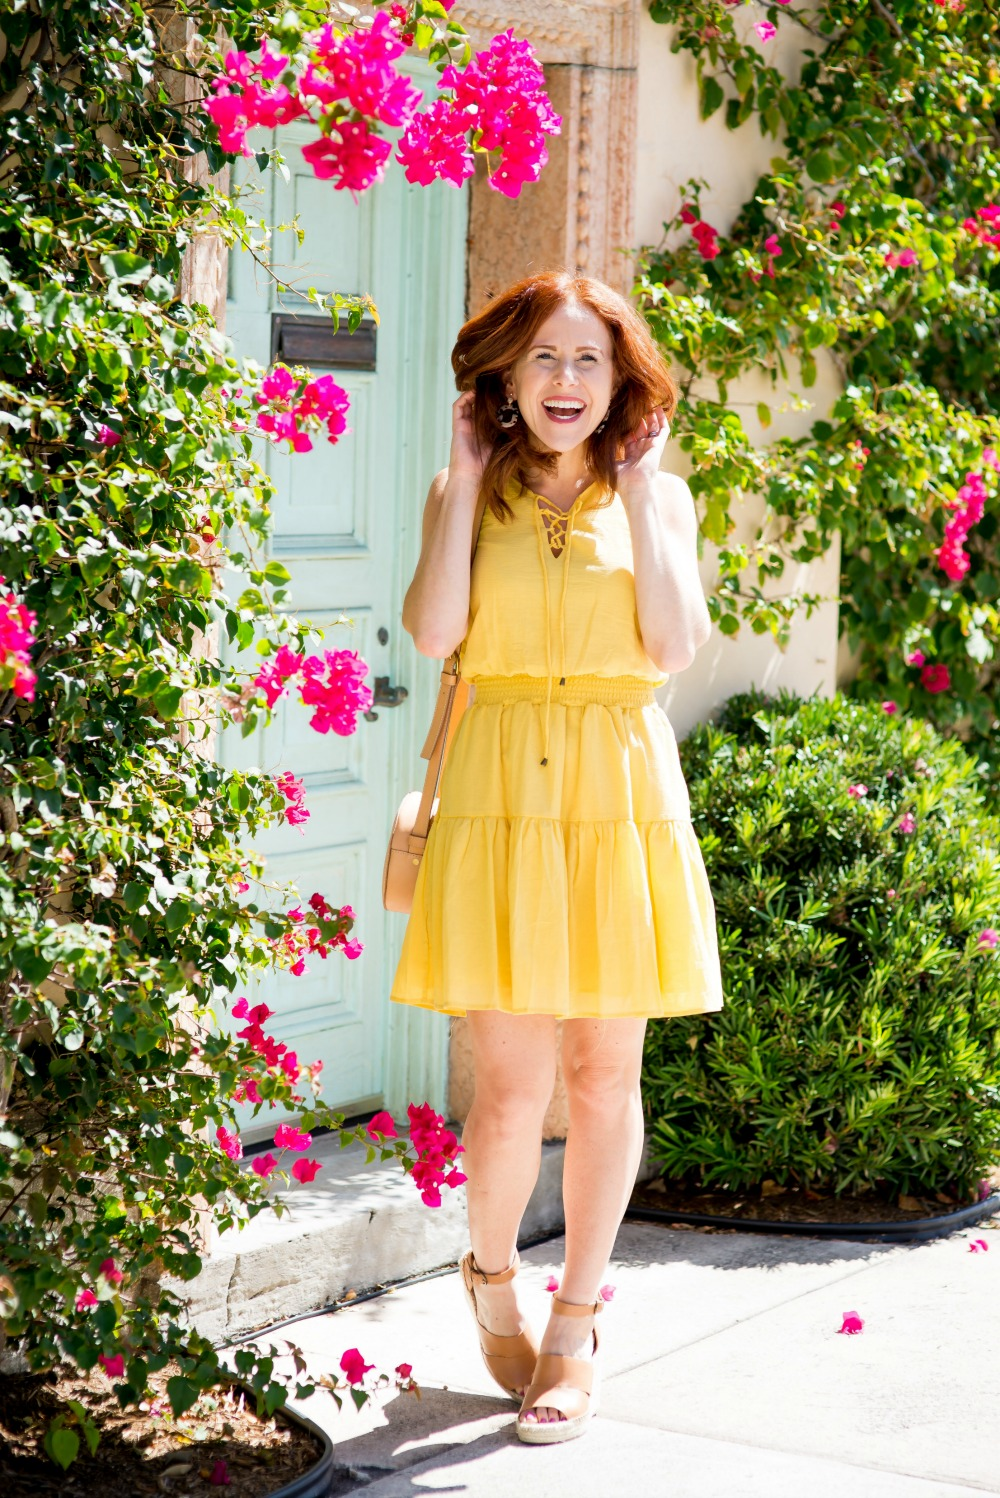 Yellow Dress Under $25, Palm Beach style - Cute Yellow Dress styled by popular Florida fashion blogger, The Modern Savvy